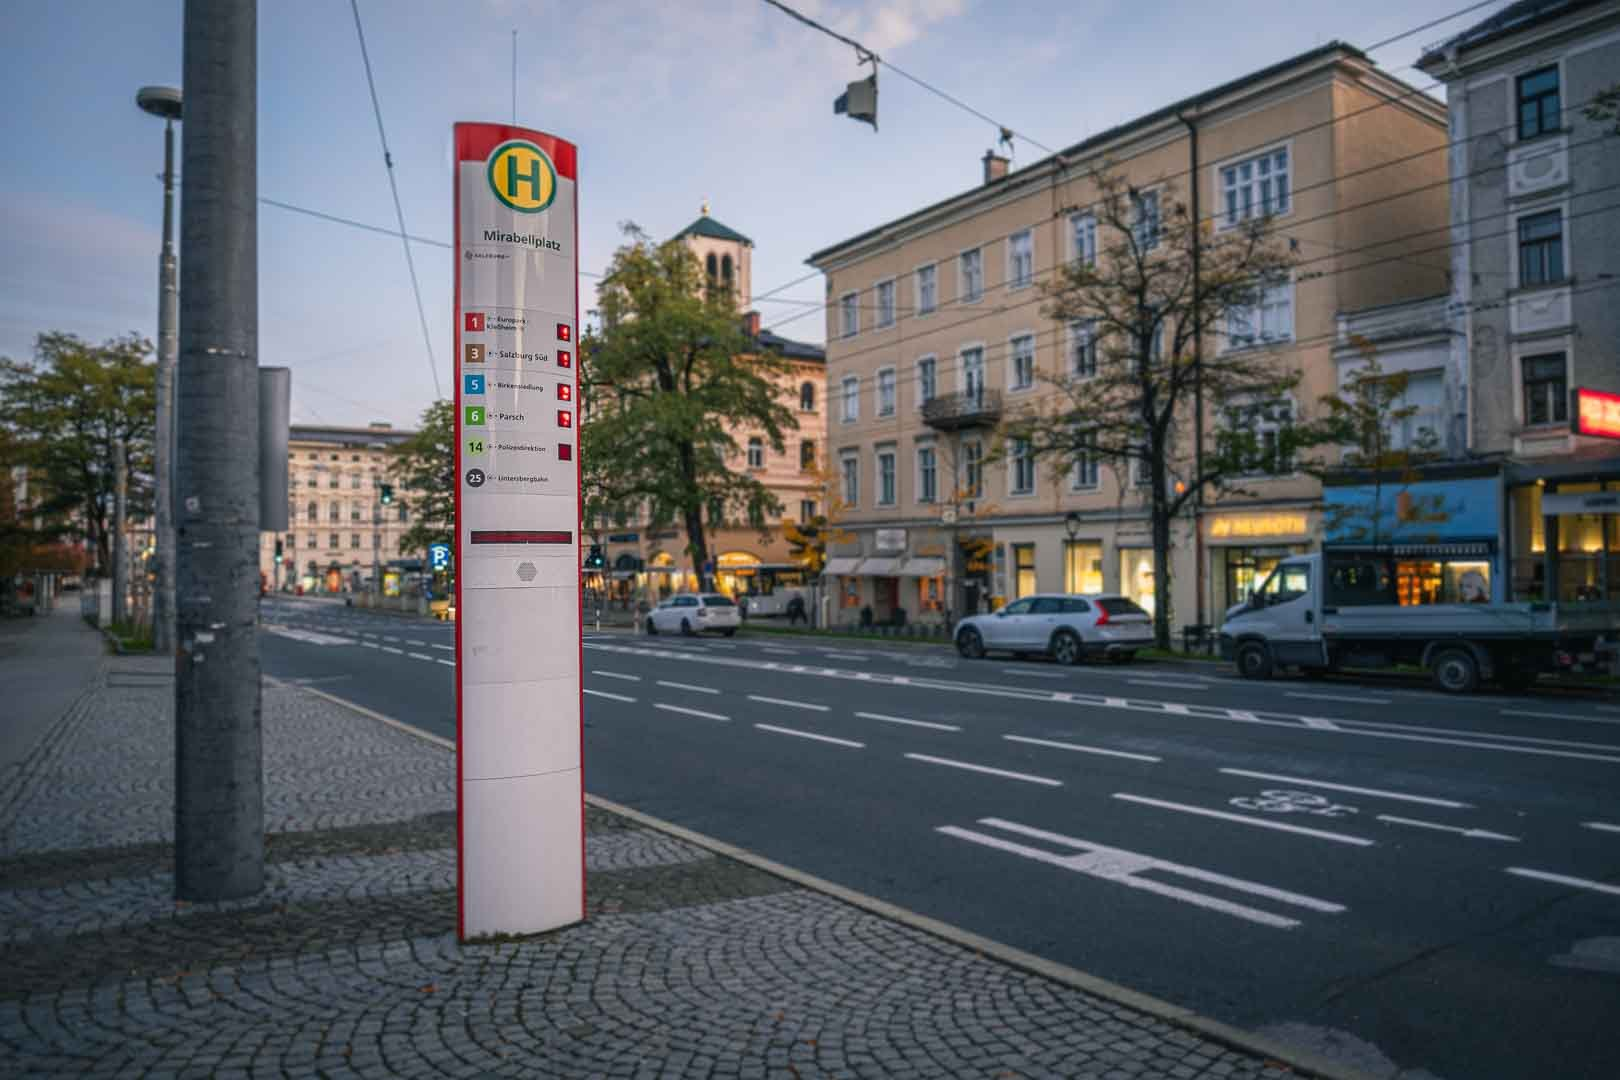 Bus stop for bus 25 at Mirabell square